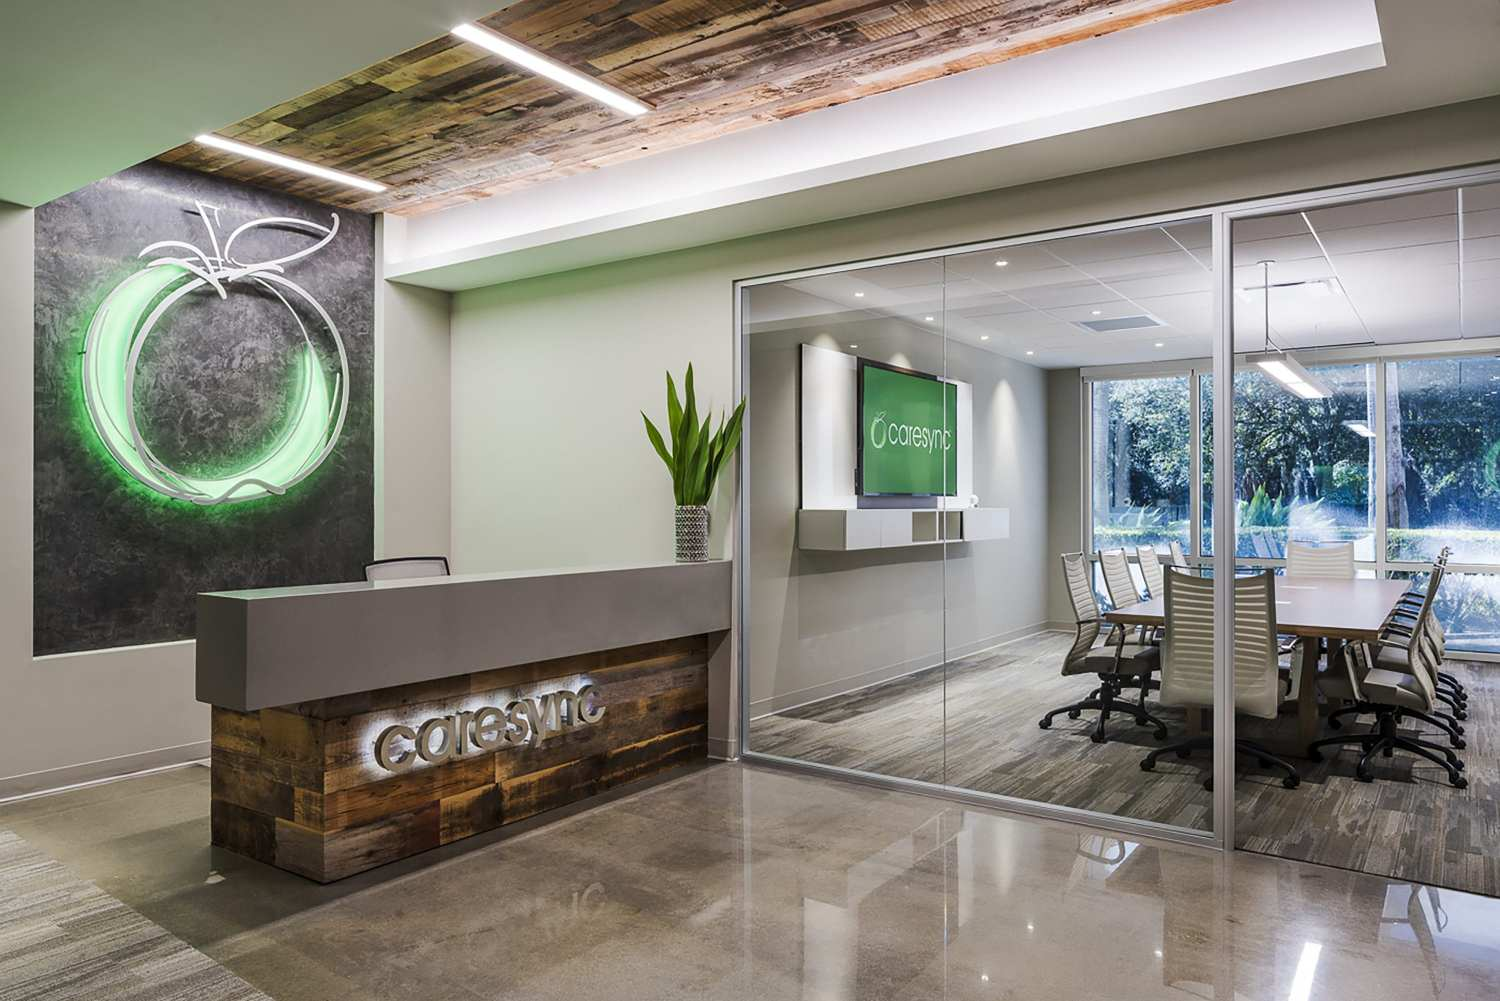 Caresync - reception